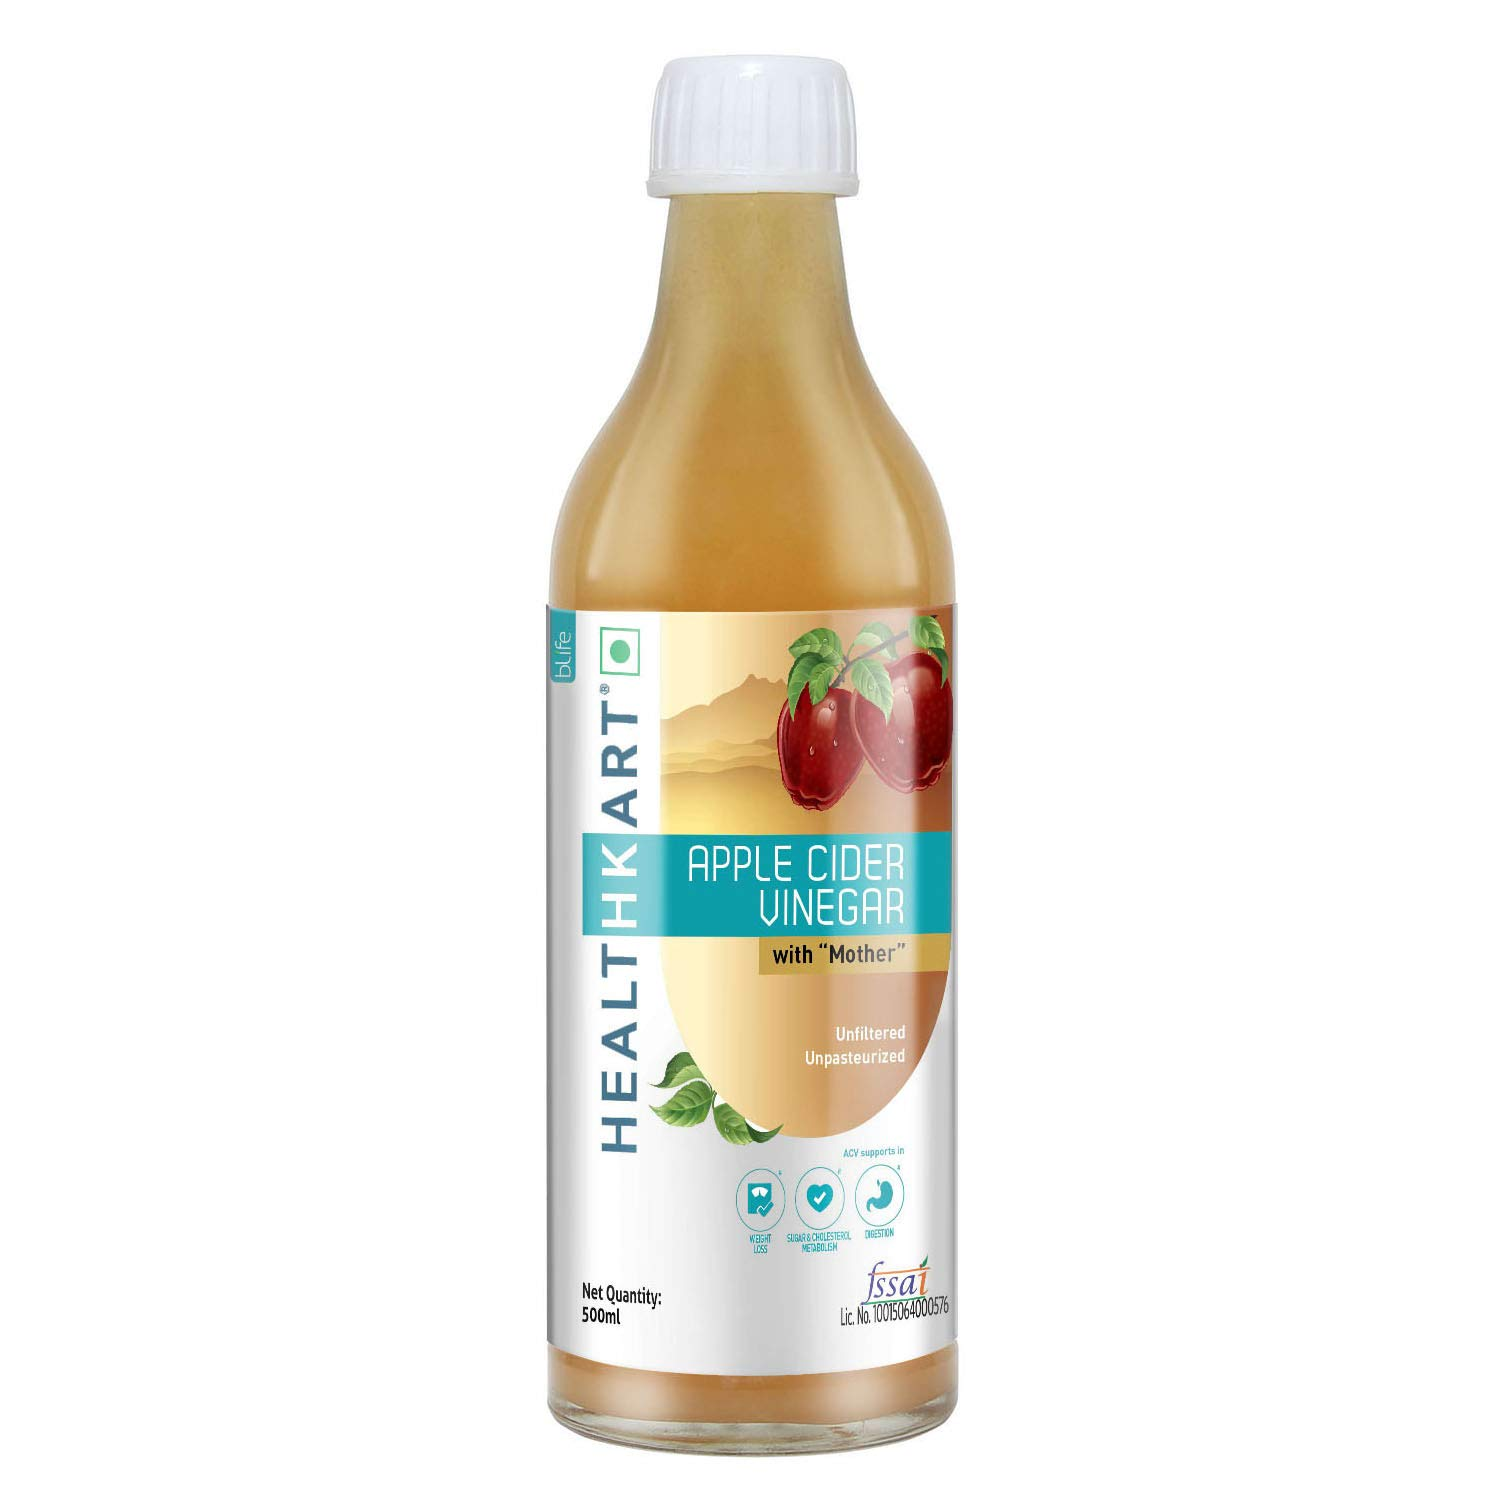 Healthkart Apple Cider Vinegar With Mother Unflavored 500ml Buy Online In Malaysia Healthkart Products In Malaysia See Prices Reviews And Free Delivery Over Rm250 Desertcart